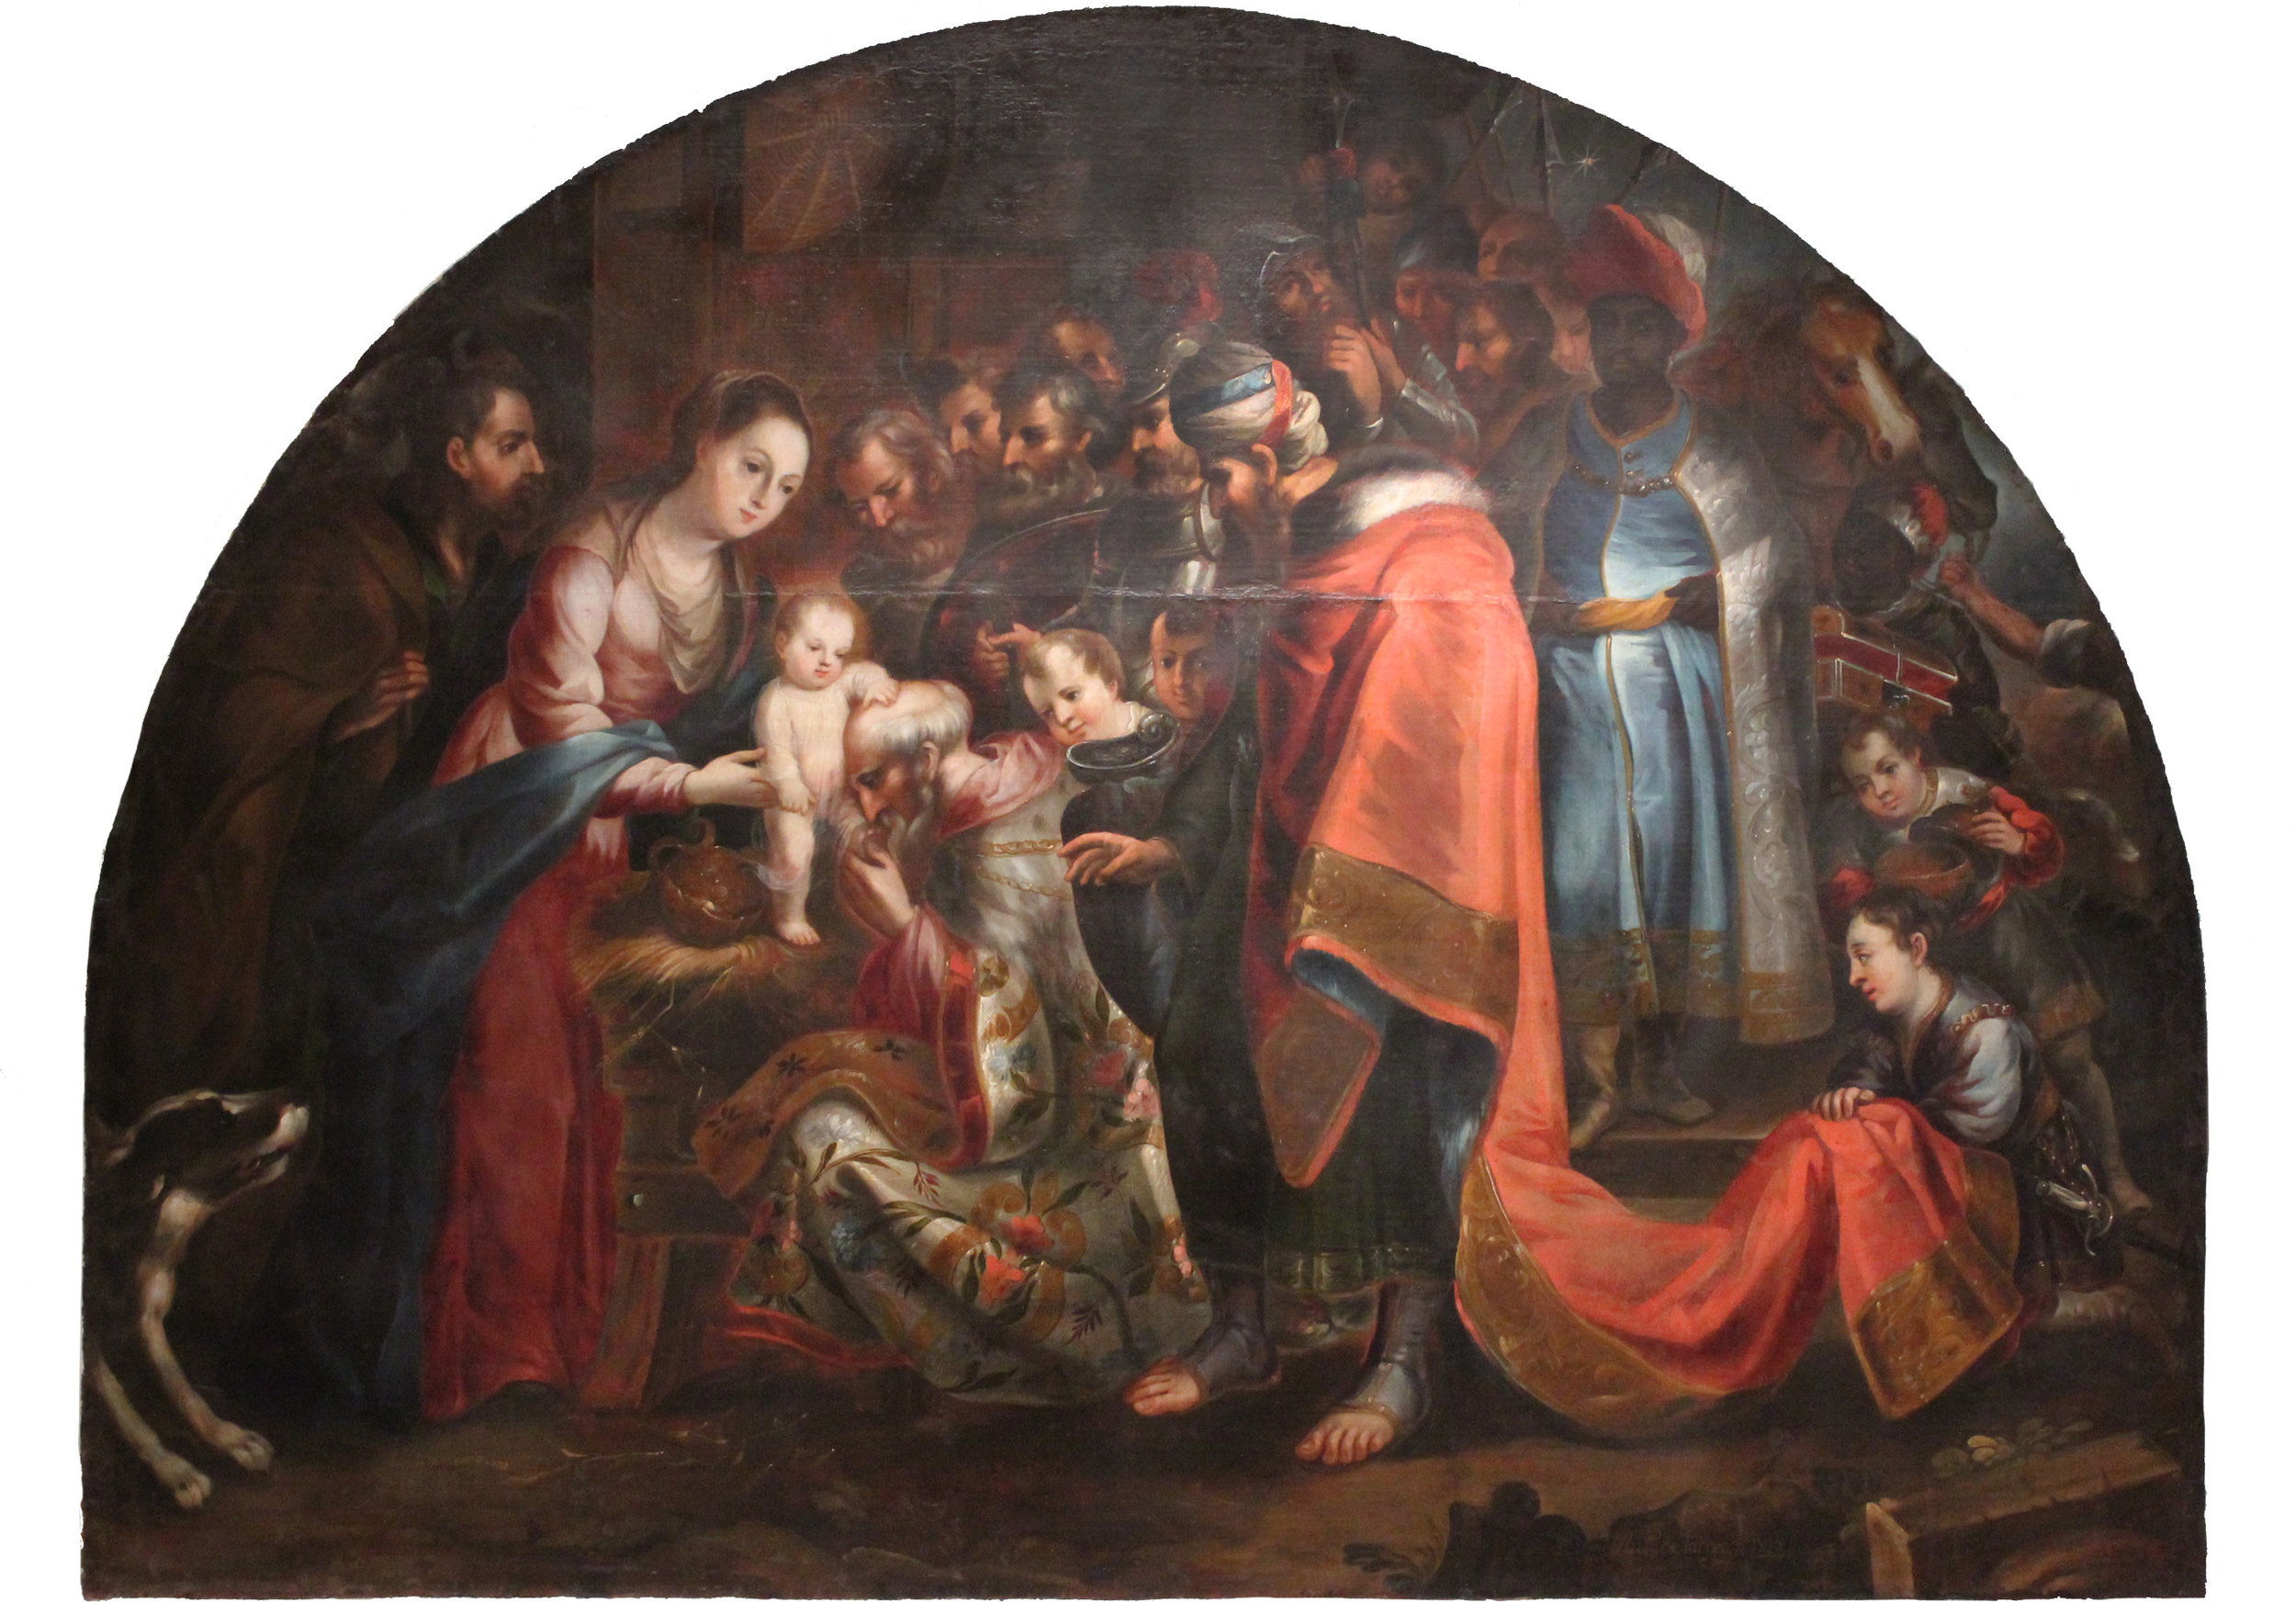 "Antonio de Torres, Adoration of the Magi, 1729, 68.5"" x 91"", Oil on canvas. San Angelo Museum of Fine Arts, Museum purchase with funds from the Art and Eva Camuñez Tucker Foundation"